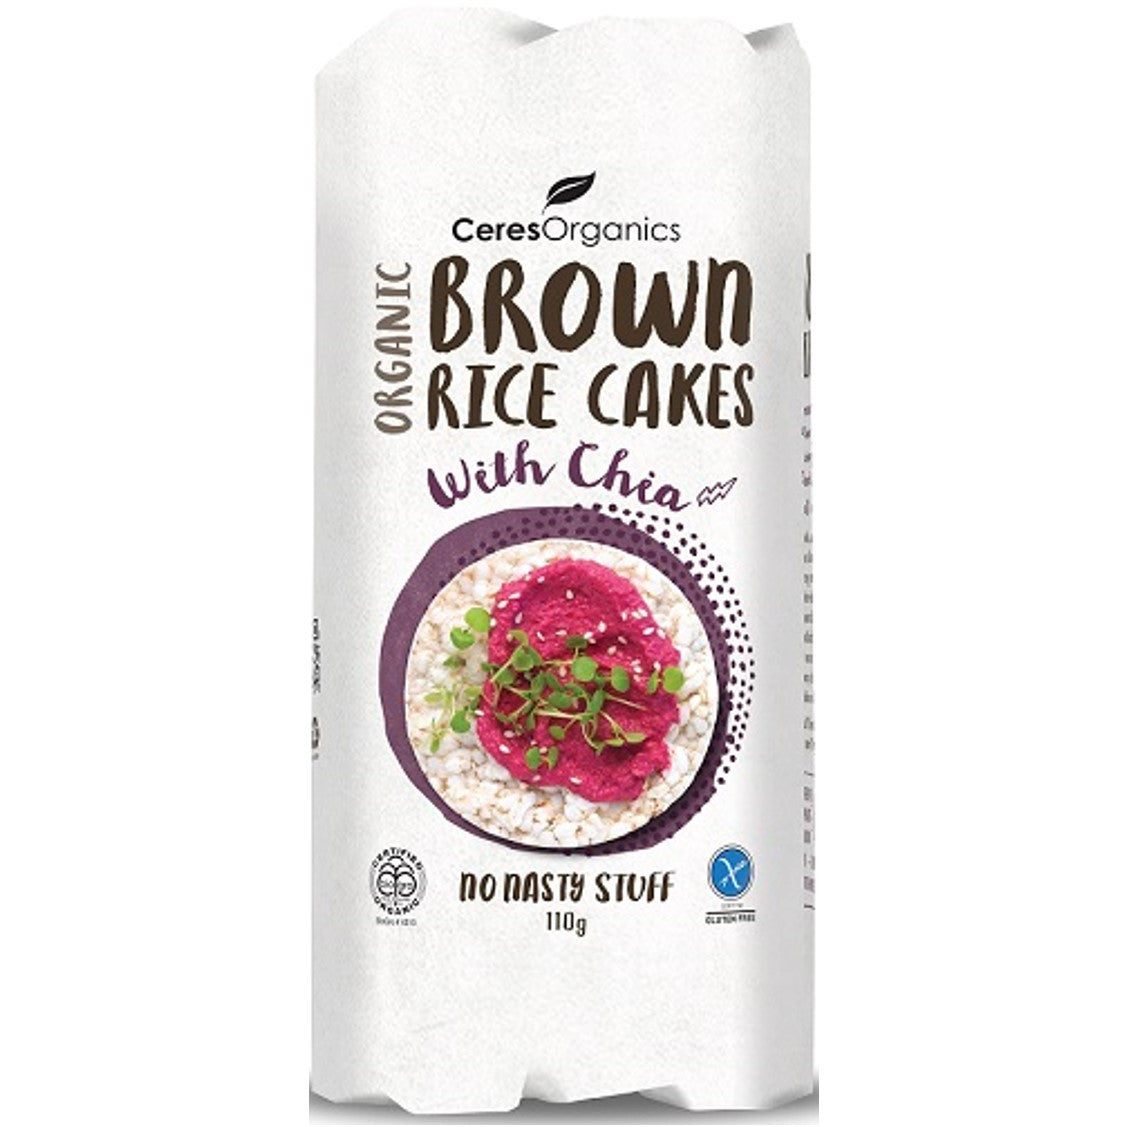 Ceres Organics Brown Rice Cakes - with Chia, 110 g.